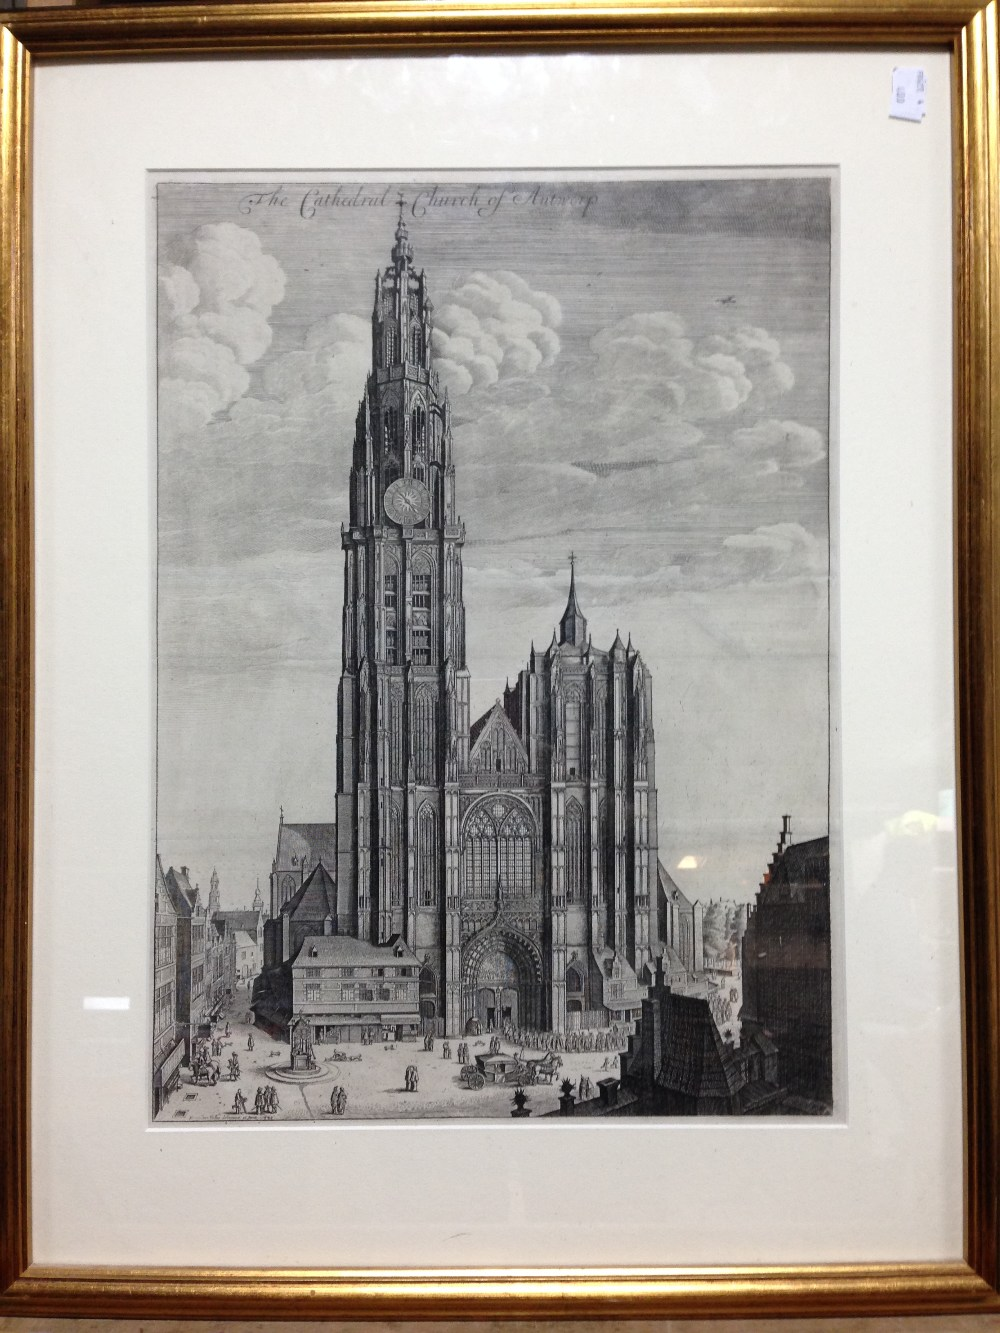 Lot 382 - Wenceslaus Hollar (Bohemian, 1607-1677) Antwerp Cathedral 1649 or later, state with text above the